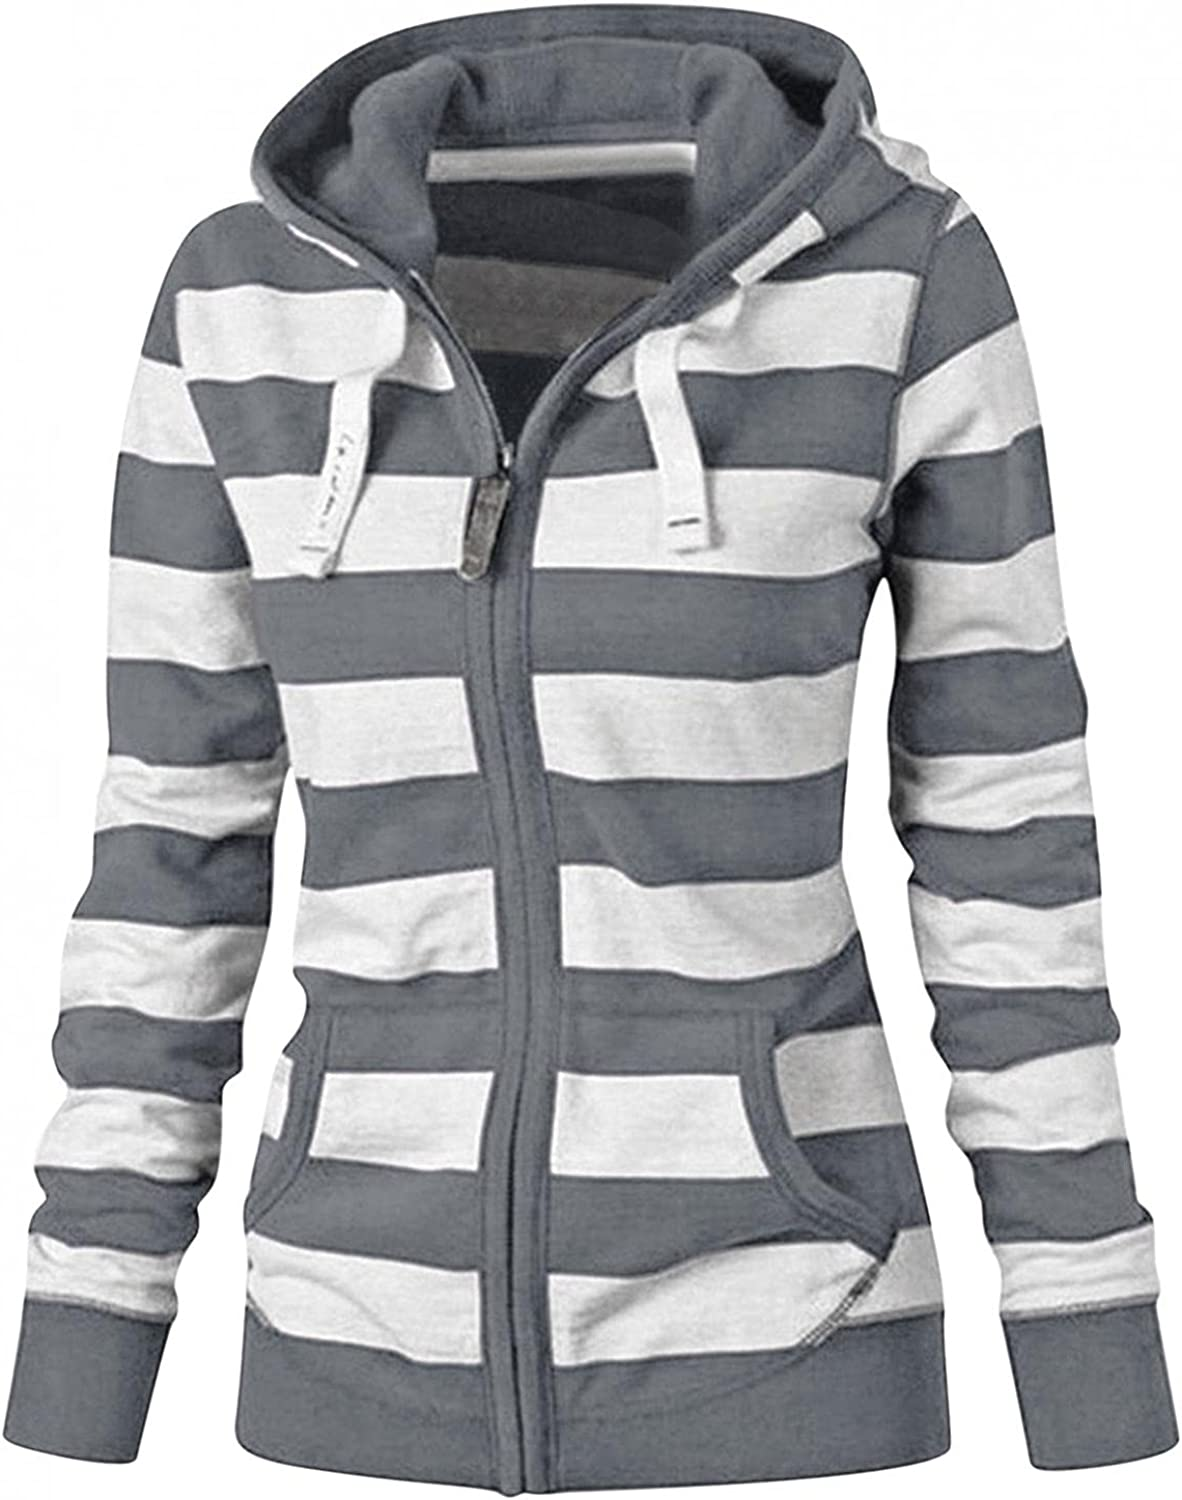 Gibobby Hoodies for Women Long Sleeve Pullover Hooded Lightweight Drawstring Stripe Print Sweatshirts Comfy Loose Blouses